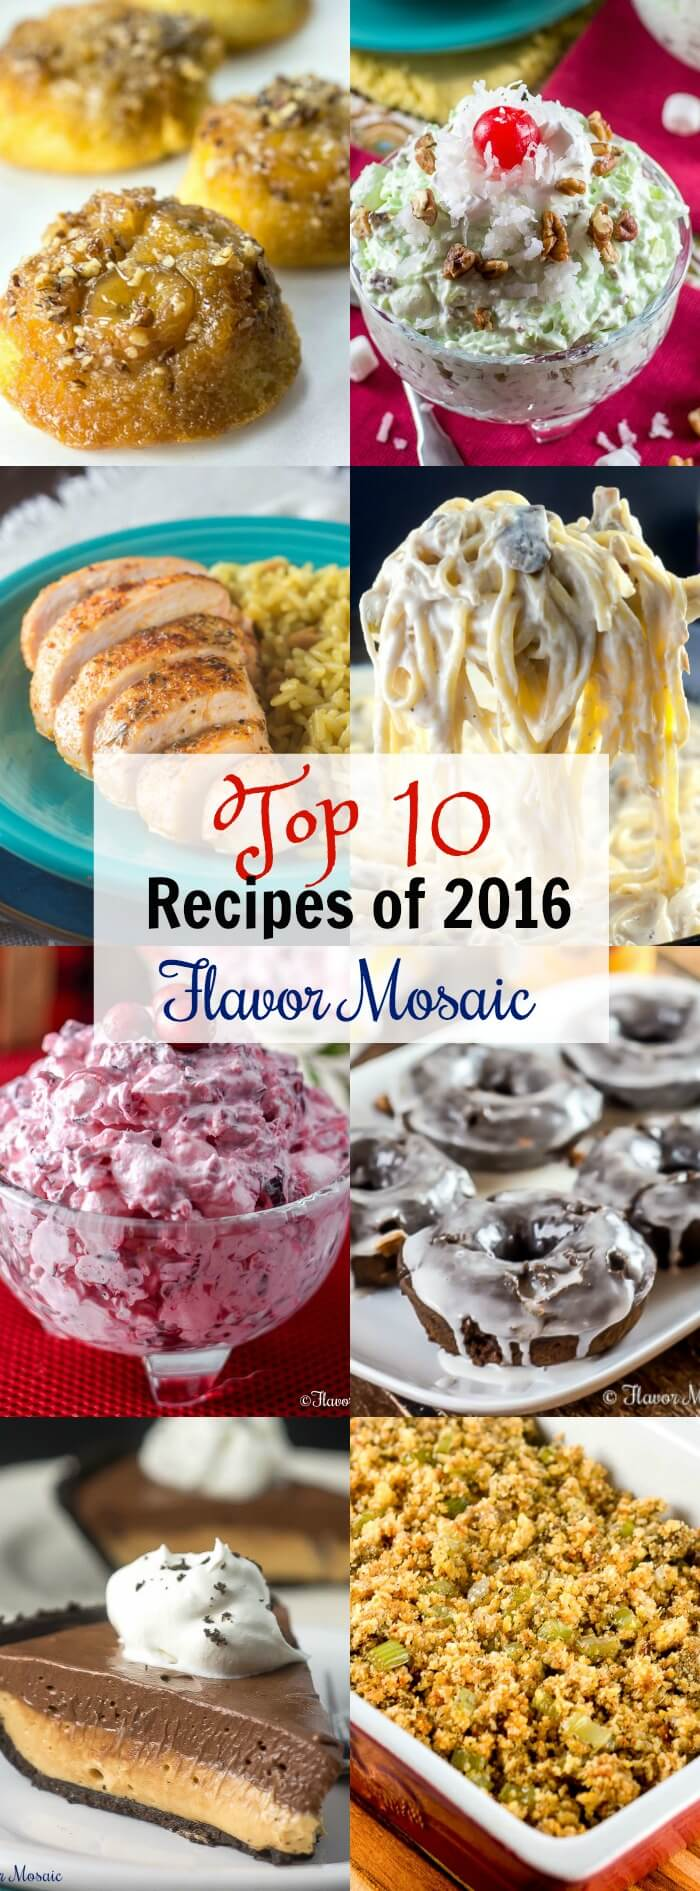 Top 10 Recipes of 2016 - Flavor Mosaic